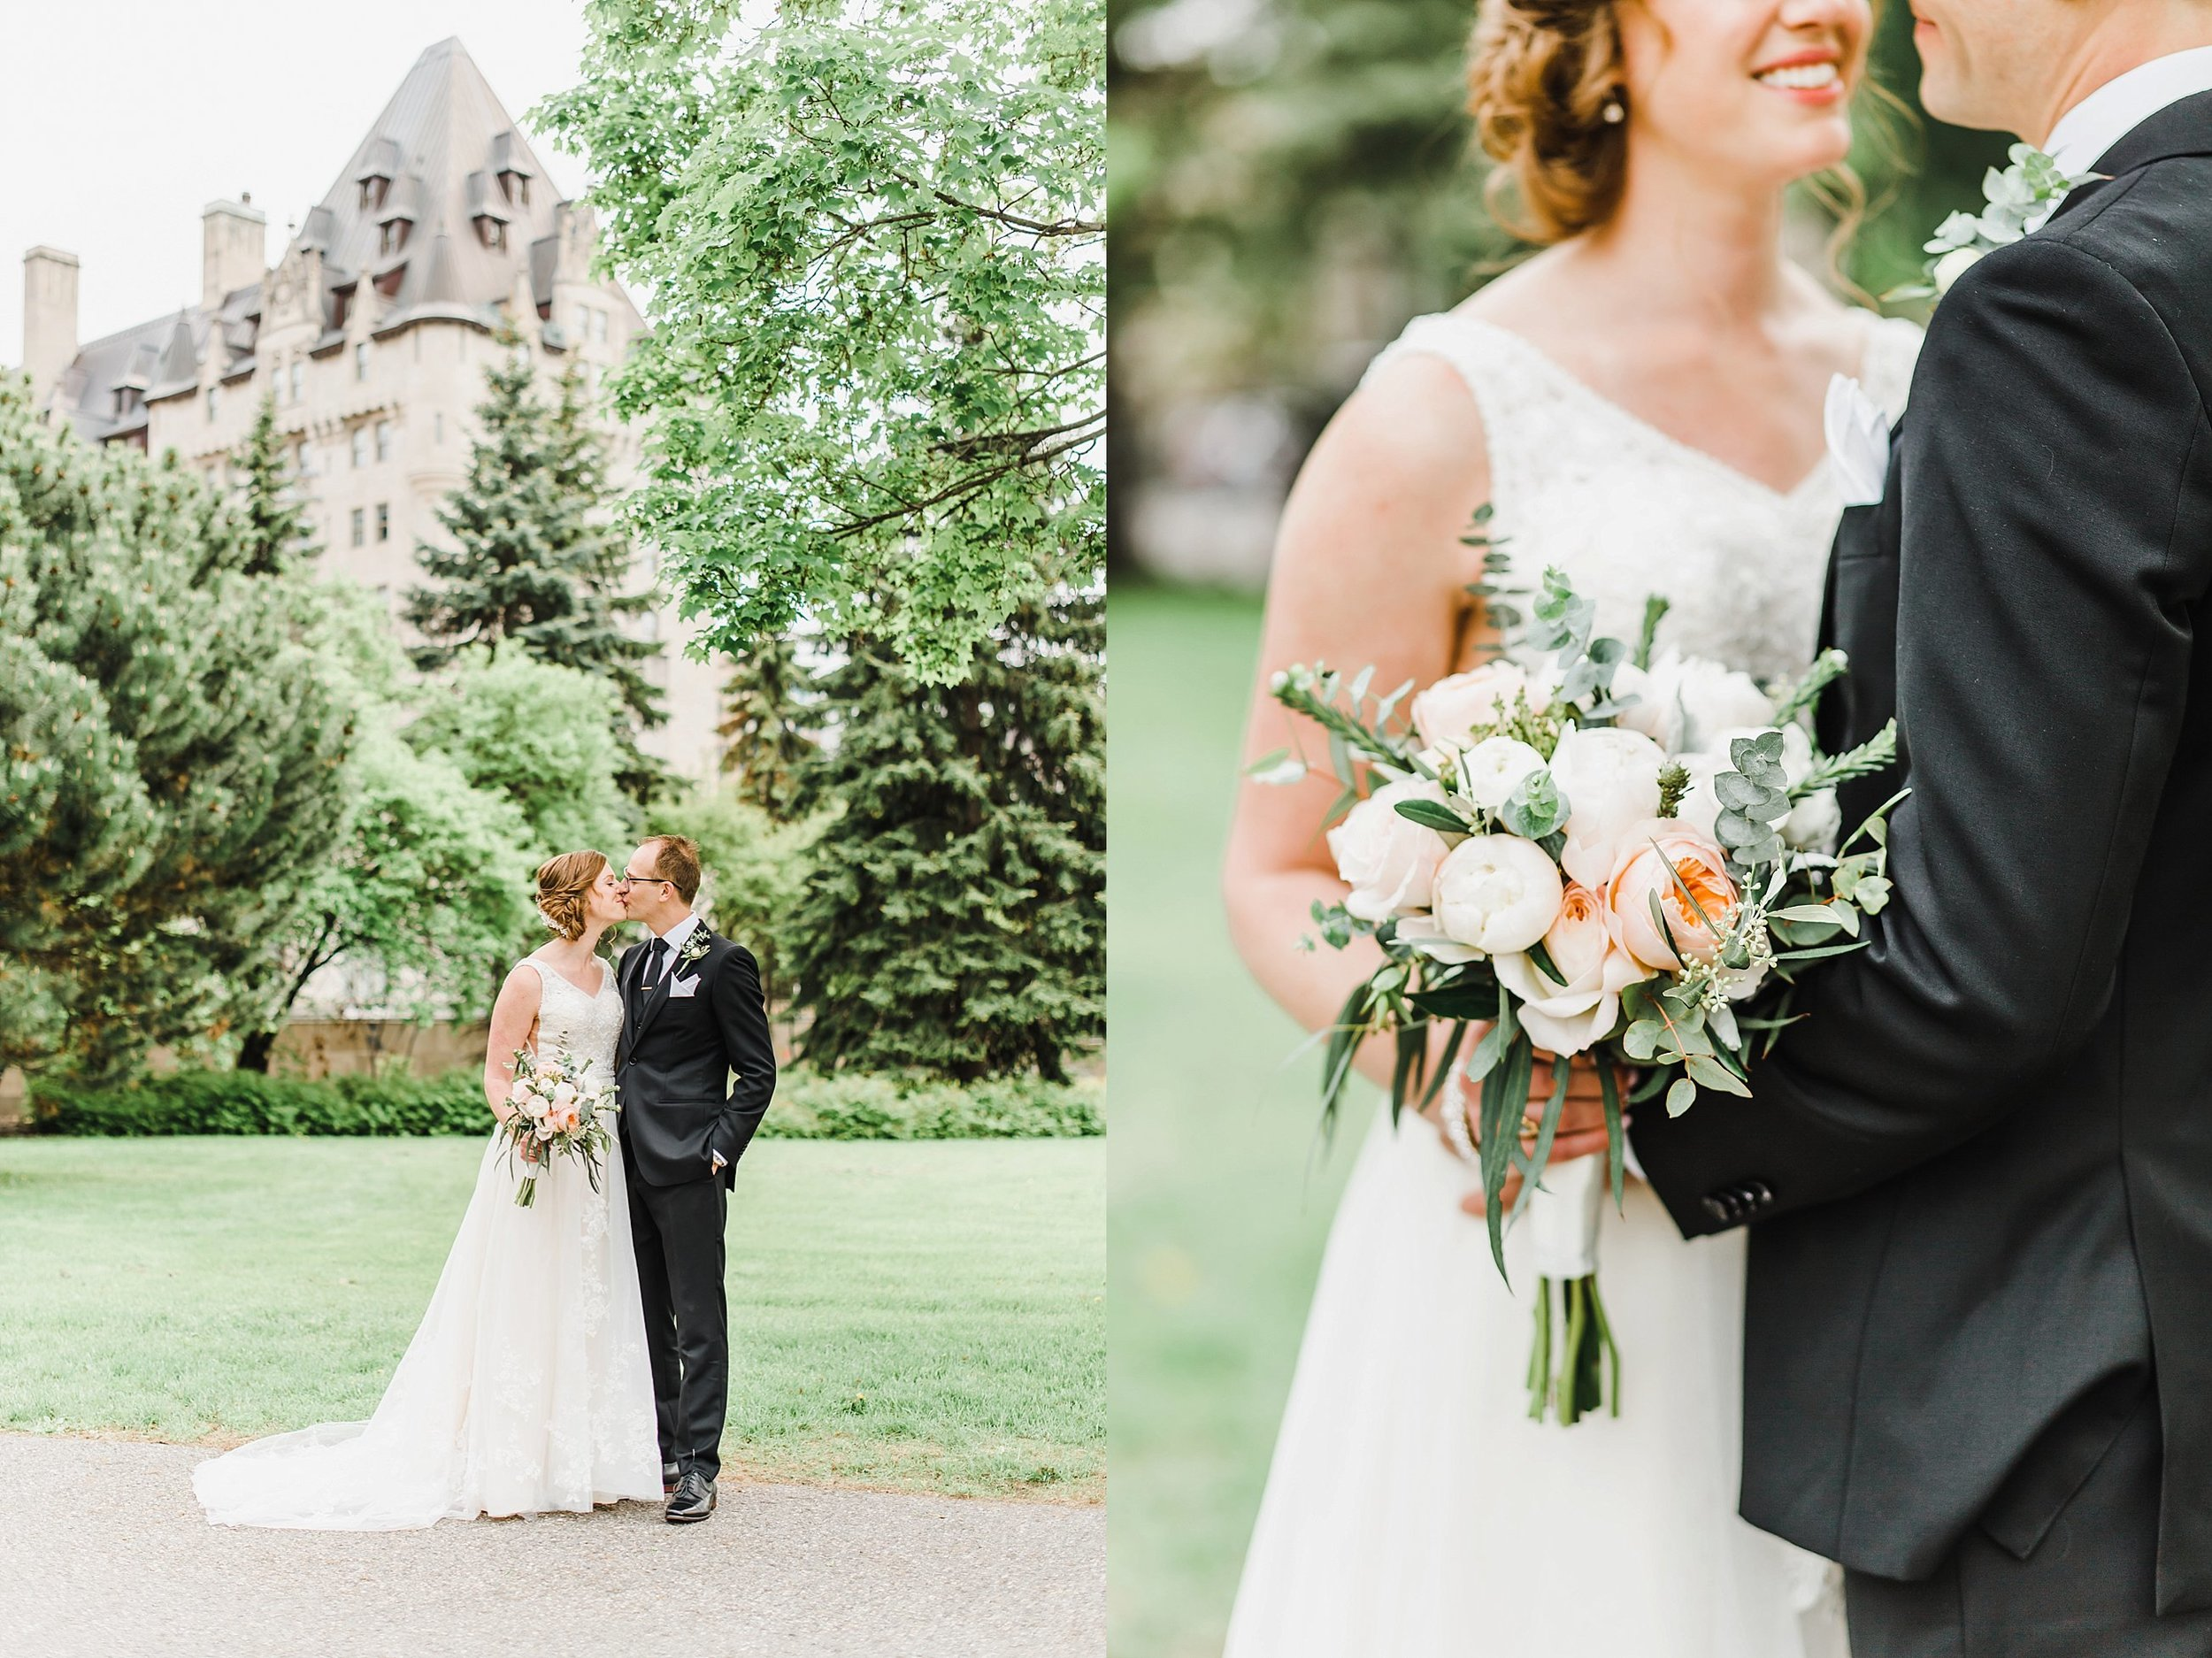 light airy indie fine art ottawa wedding photographer | Ali and Batoul Photography_0307.jpg